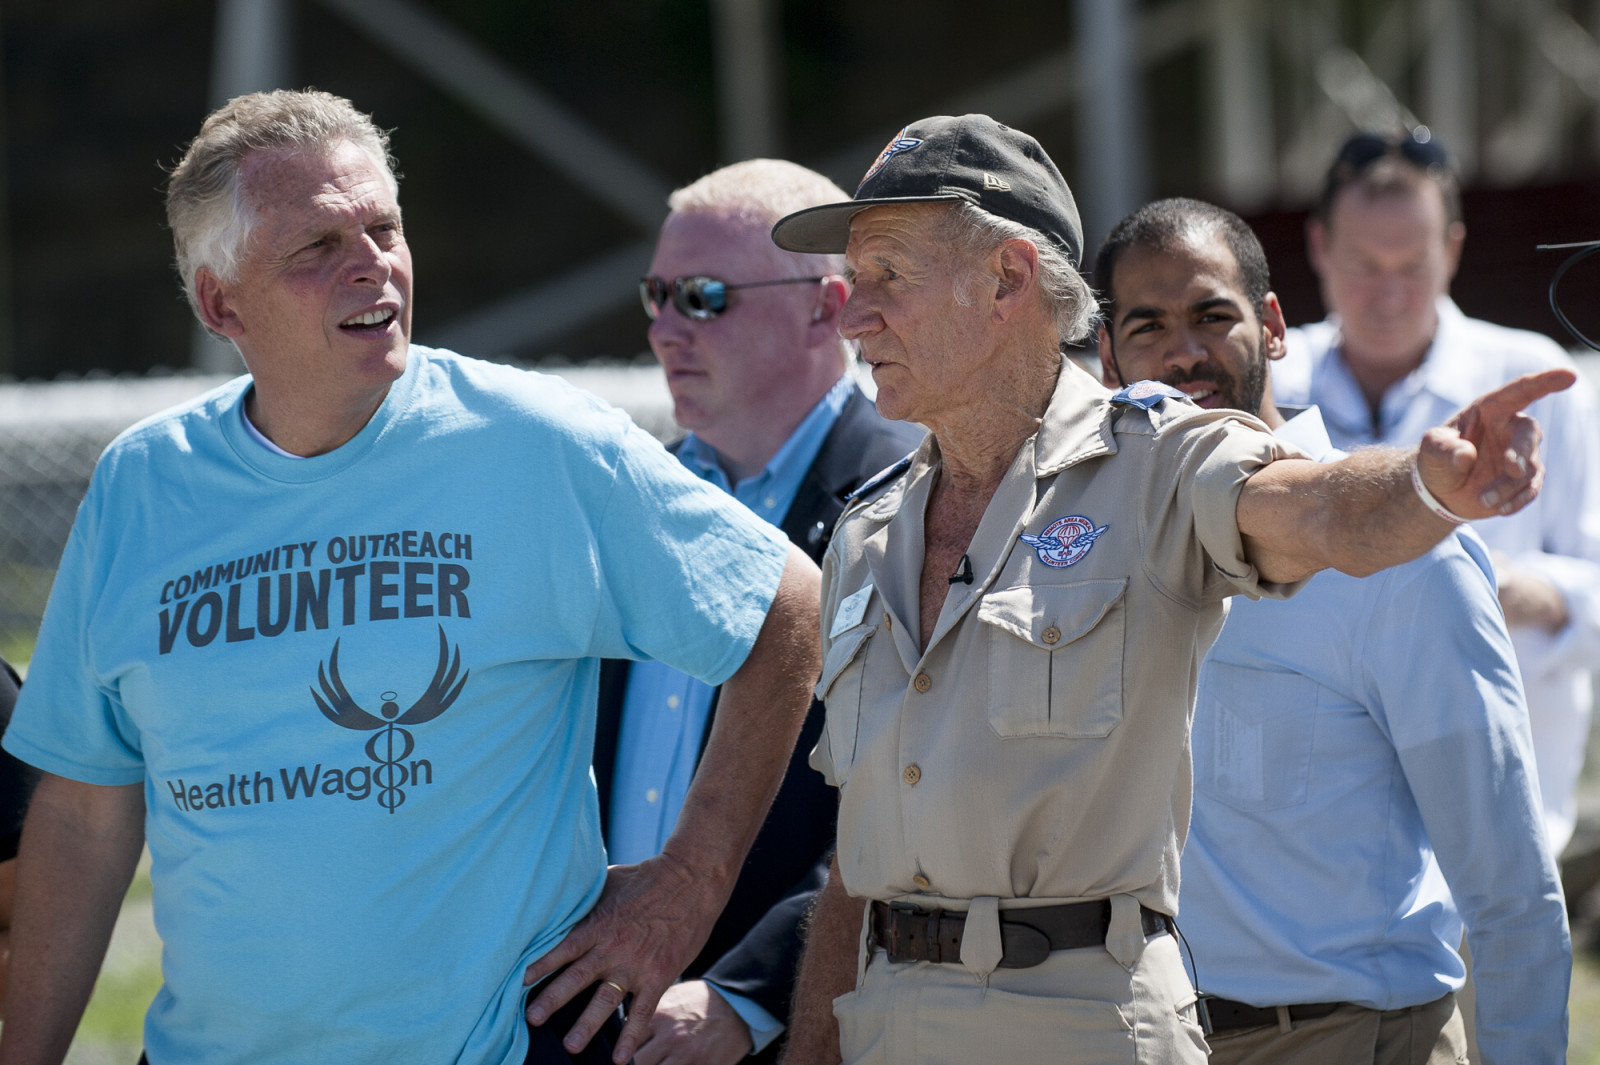 RAM Founder Stan Brock, left, gives Virginia Governor Terry McAuliffe, left, a tour at the16th annual Remote Area Medical (RAM), clinic in Wise, Virginia, U.S., on Friday, July 17, 2015. Photo: Pete Marovich/Bloomberg